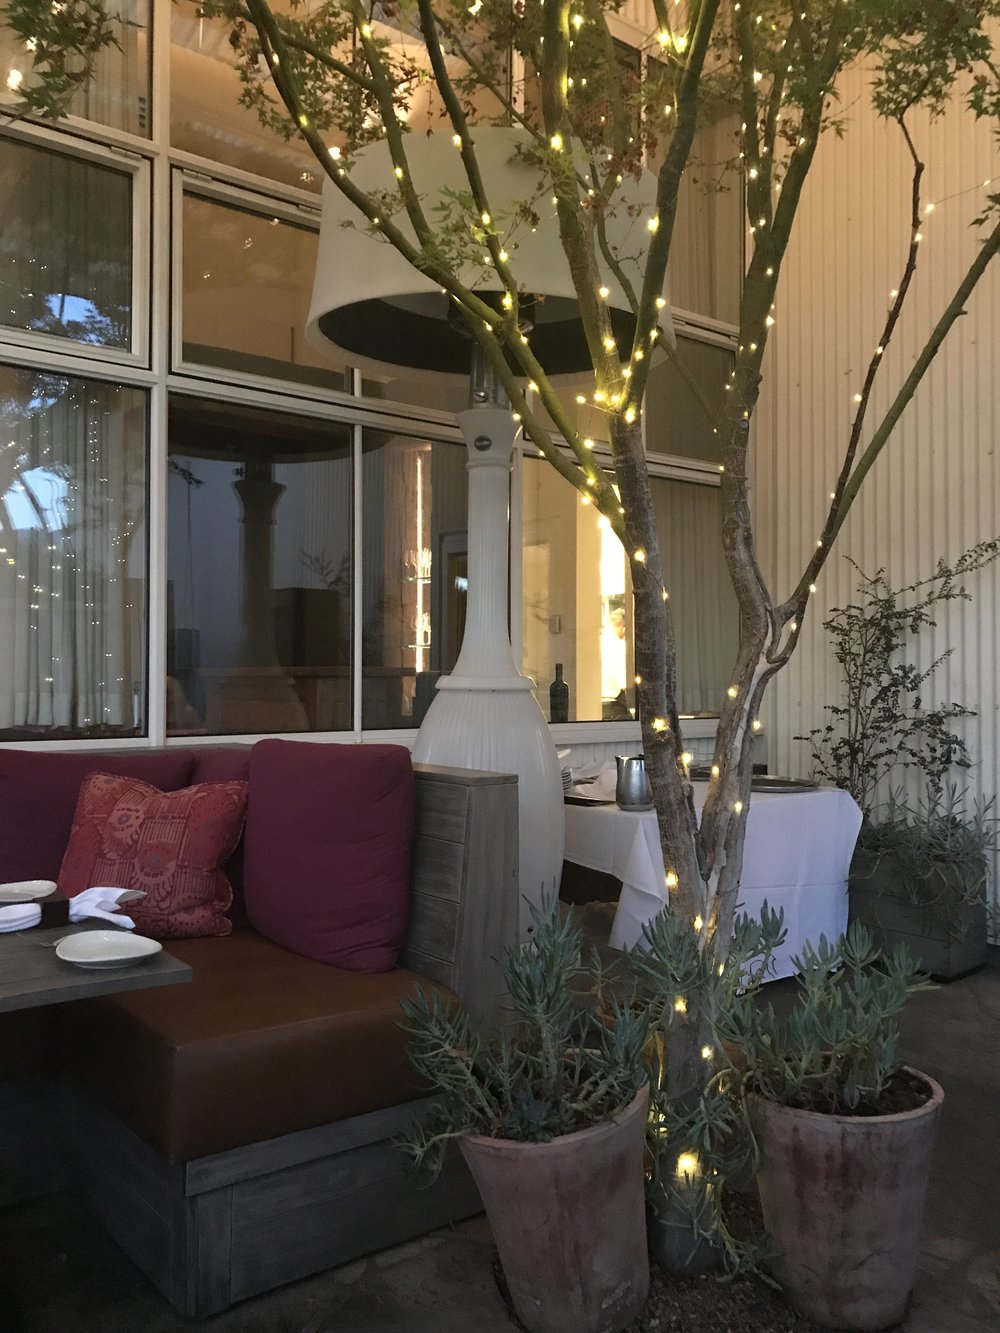 """'Press'in Saint Helena is such a beautiful restaurant! Highly recommend if you are around that area! And its right beside """"Dean and Deluca"""" which is just a dangerous place if you love coffee and simple luxuries!"""